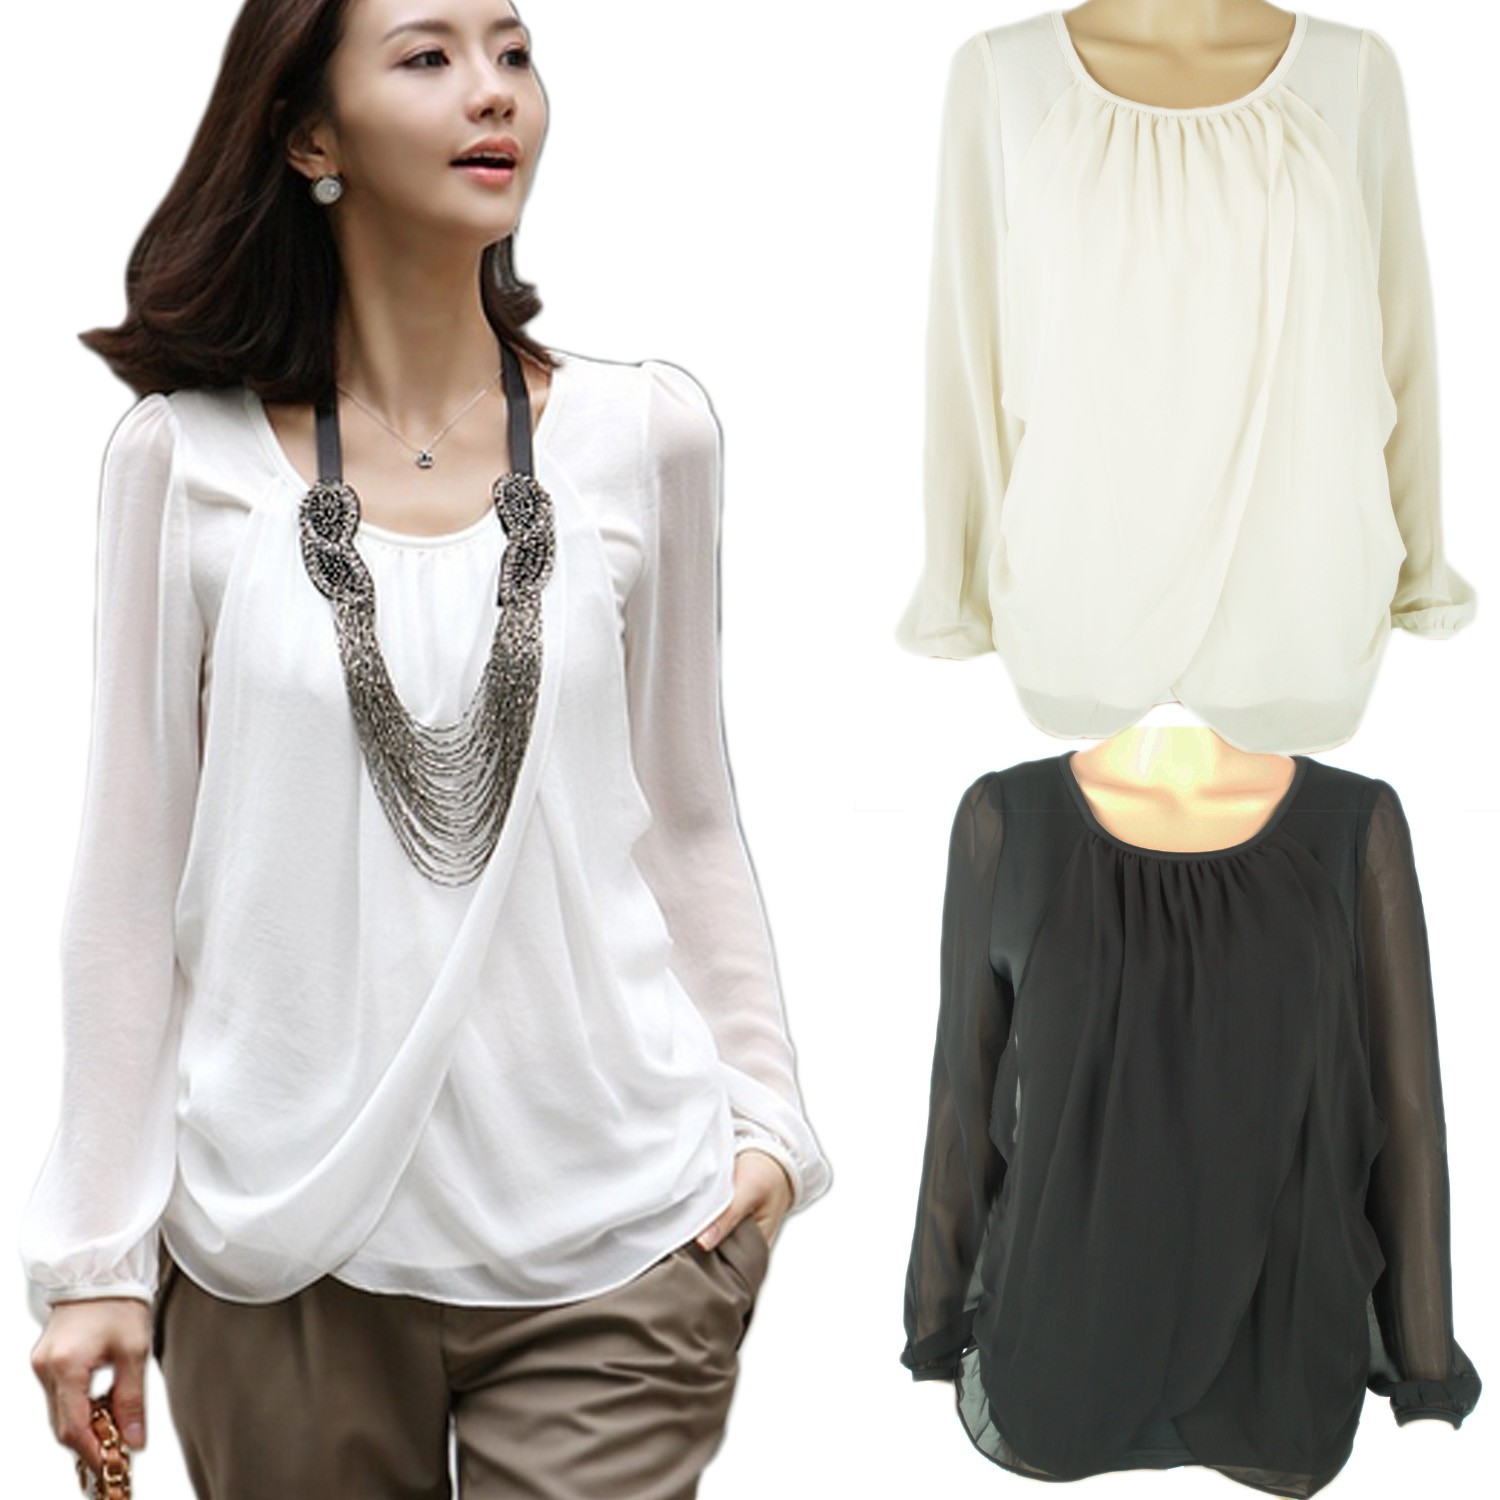 Womens Chiffon Sheer Top Blouse AU 6 8 10 See Through Long Sleeve Simple